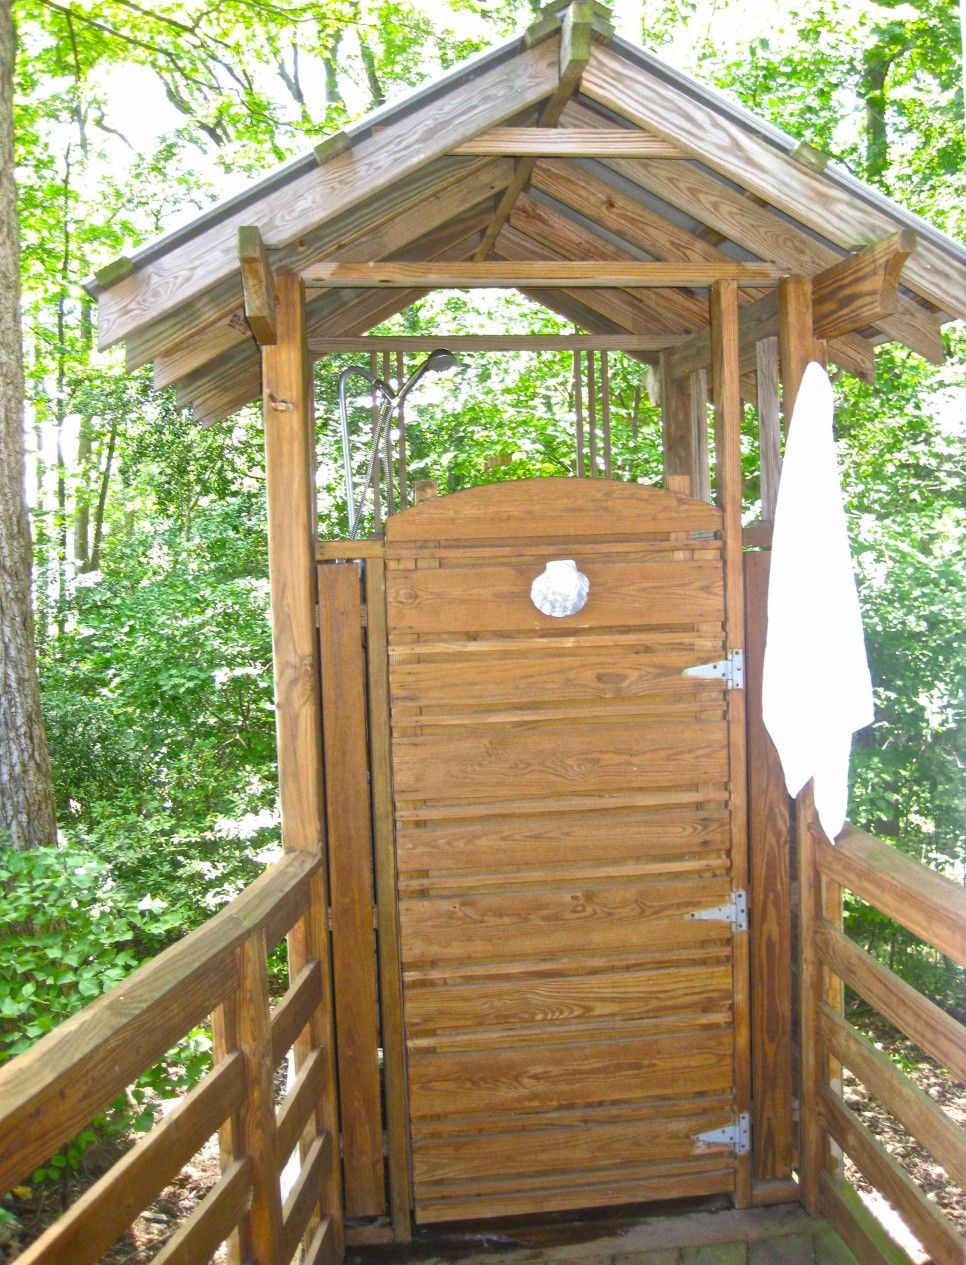 bathroom wooden traditional outdoor shower enclosure with wooden door canopy and metal roof also wooden